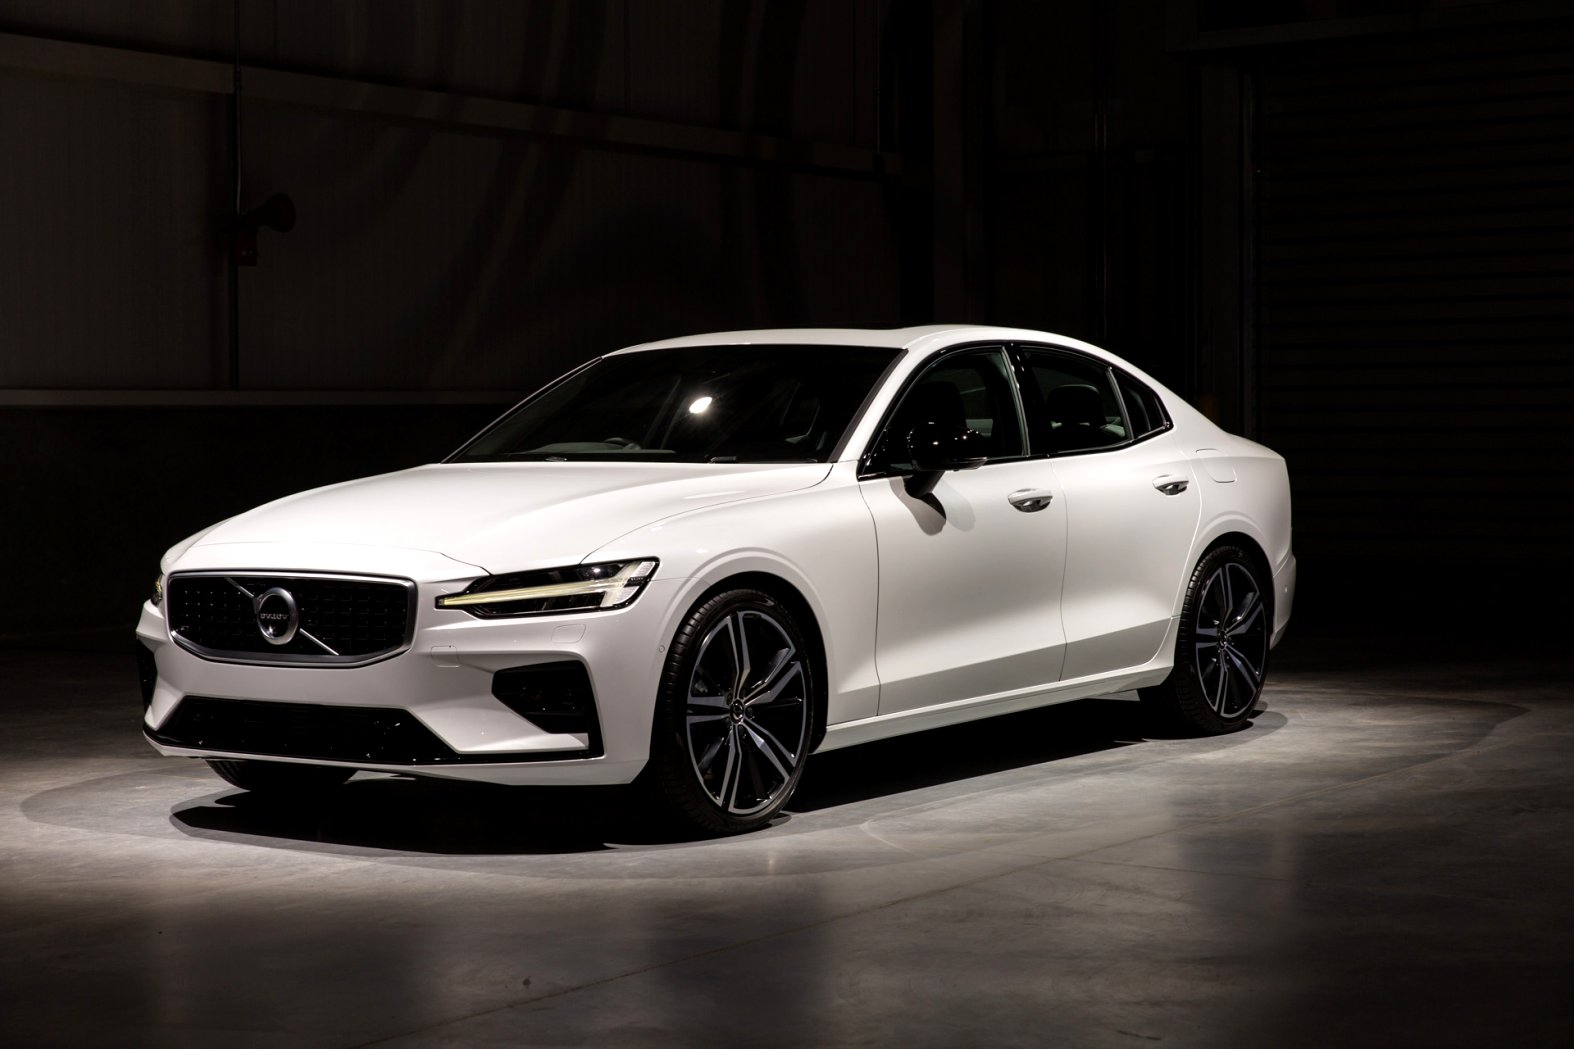 2020 used volvo s60 Price, Design and Review